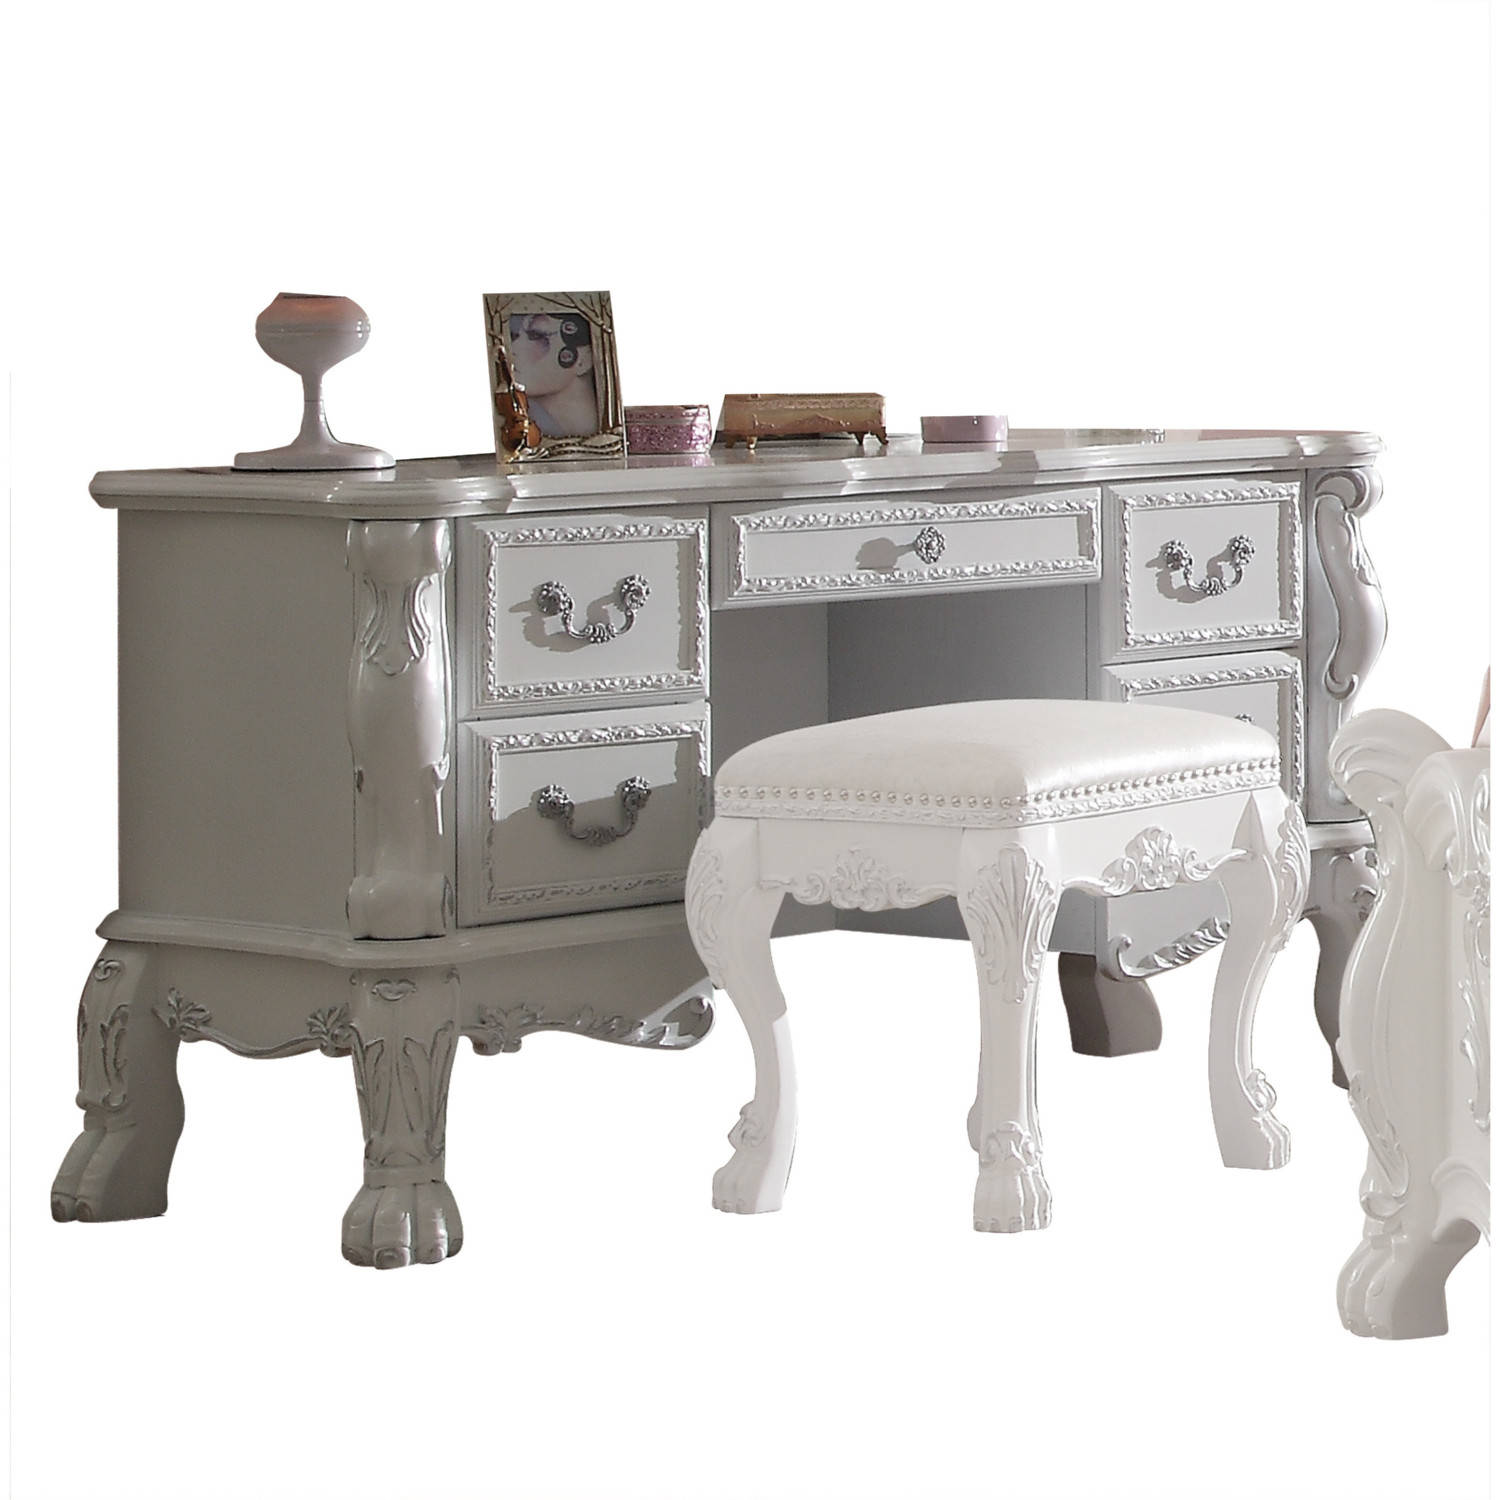 Acme Furniture Dresden Antique White Vanity Desk Click To Enlarge ... - Acme Furniture Dresden Antique White Vanity Desk The Classy Home